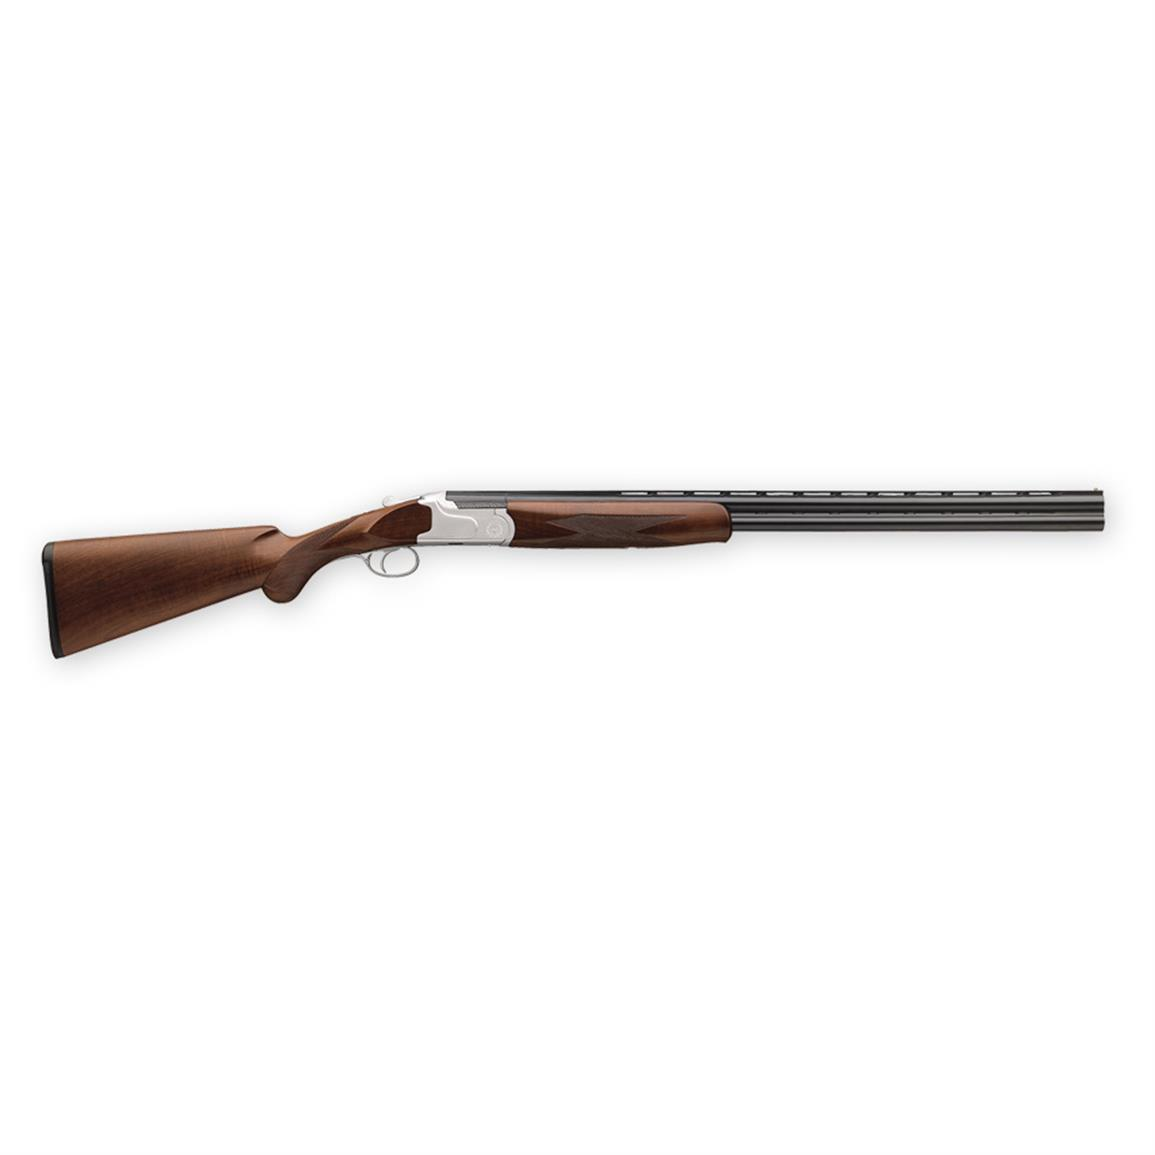 "CZ-USA Youth Redhead Reduced Length, Over/Under, 20 Gauge, 24"" Barrels, 2 Rounds"